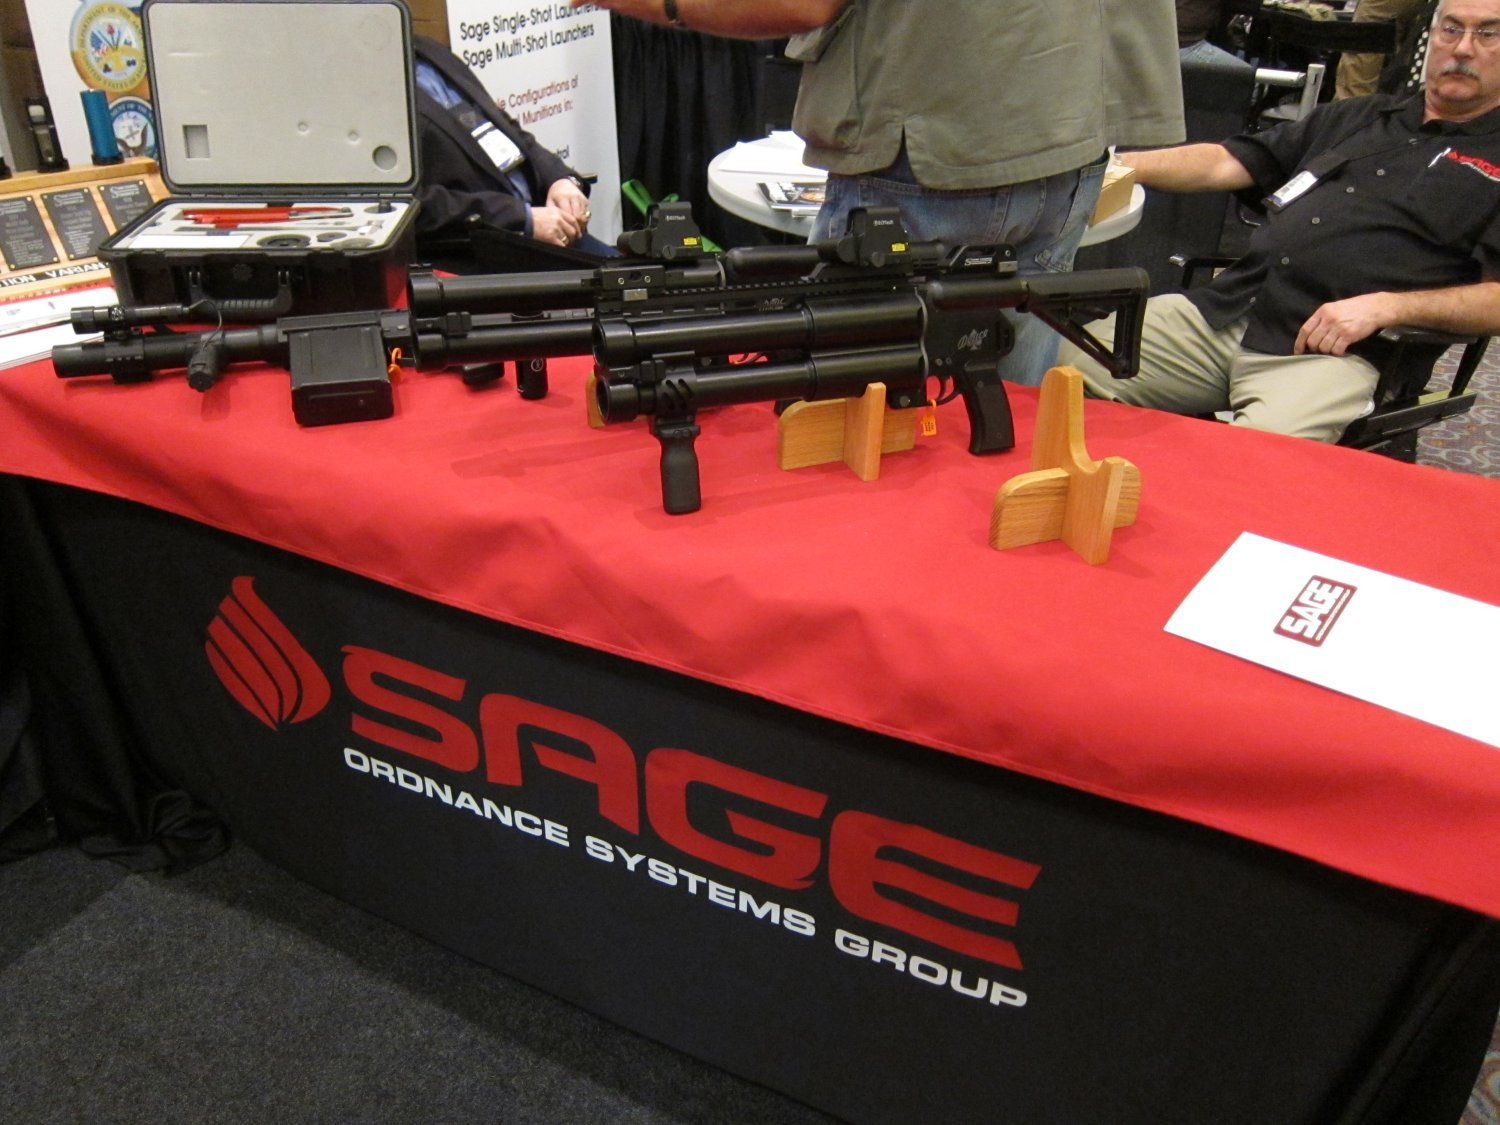 Sage Ordnance Systems Deuce Dual 40mm Grenade Launcher SHOT Show 2011 4 <!  :en  >Sage Ordnance Systems Deuce Over/Under Dual 40mm (40x46mm NATO)/37mm Sage Rifled/37mm Smooth Bore Grenade Launcher and Prototype Mag Fed Semi Auto 37mm Grenade Launcher <!  :  >